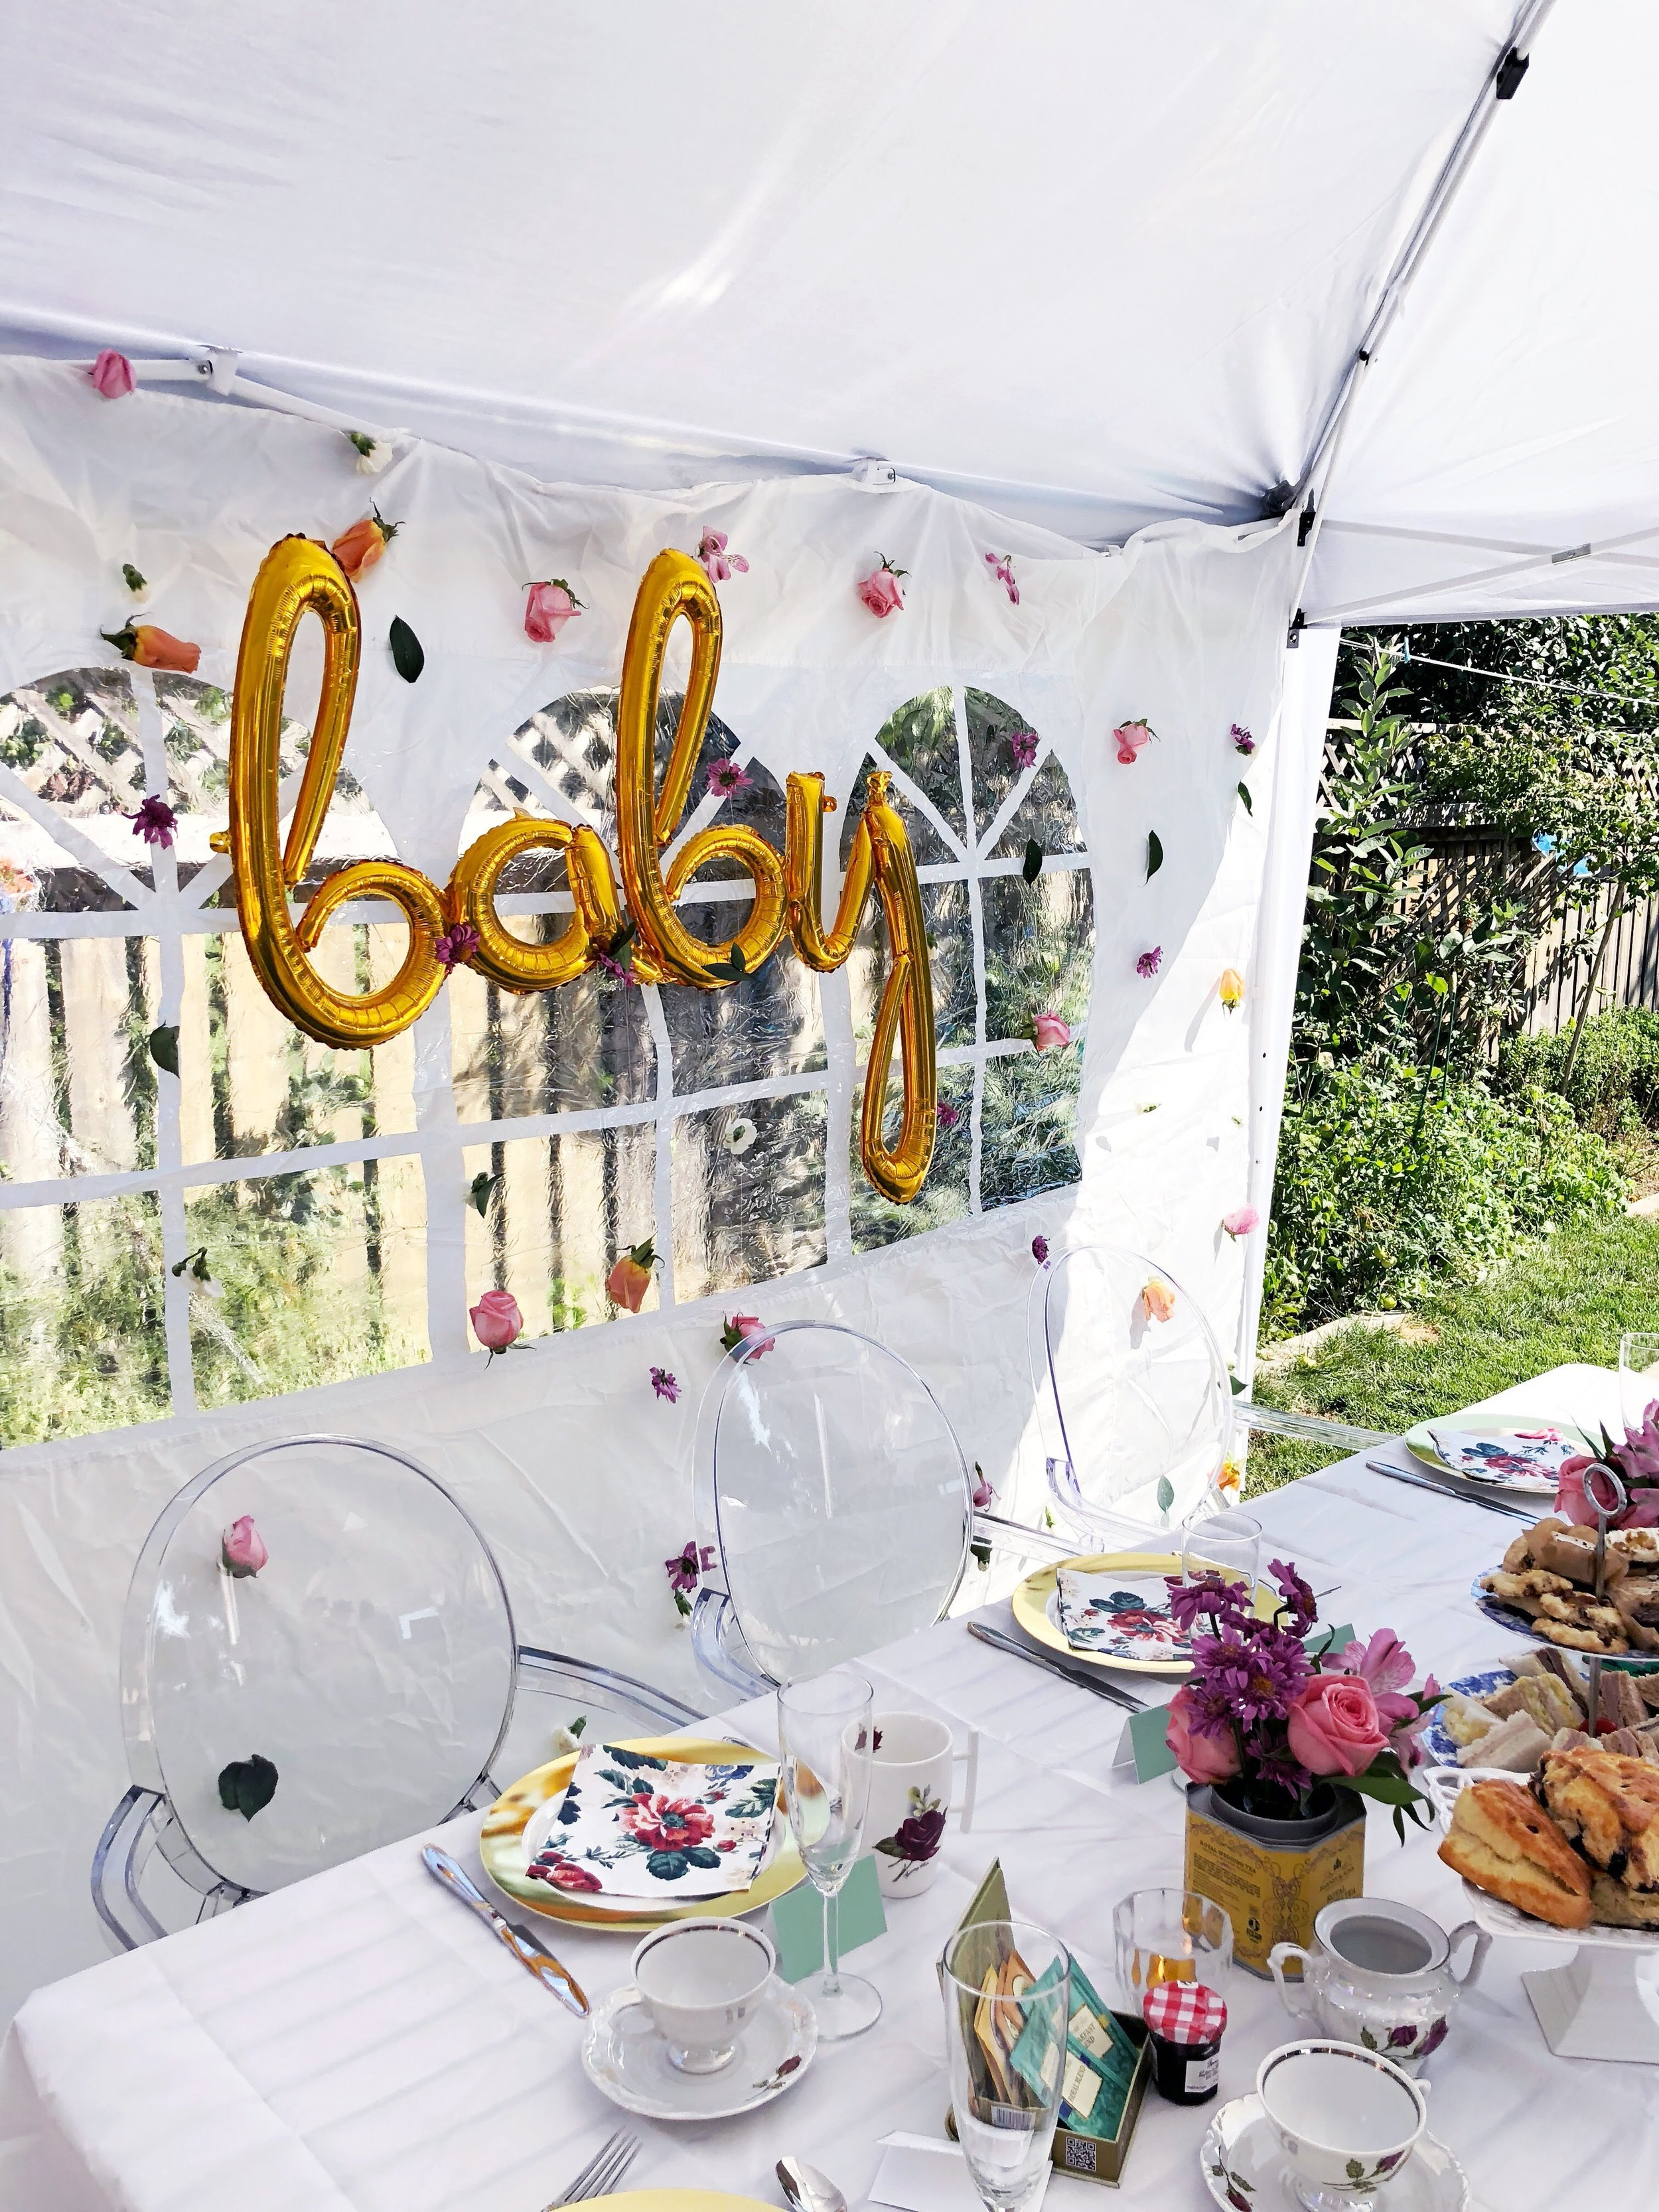 "Baby Sprinkle - Baby Shower Coordination // September 2018""Pastiche Events truly went above and beyond to create the most perfect Baby Sprinkle for my sister. Khrystyna took my idea of a 'garden tea party' theme and ran with it. Her organization skills, creativity and time management was the reason the party was such a success. As host of the event, I was still able to greet my guests and enjoy myself because I knew Pastiche Events had everything under control. My favourite part of working with Khrystyna was her attention to detail. She came up with the idea of using tea tins for flower centrepieces, they were definitely eye catching. I am so glad Pastiche Events was a part of my sisters special day, without them I would not have been able to pull off such an amazing party!"" - Iryna (Sister of the Mom-to-be!)"